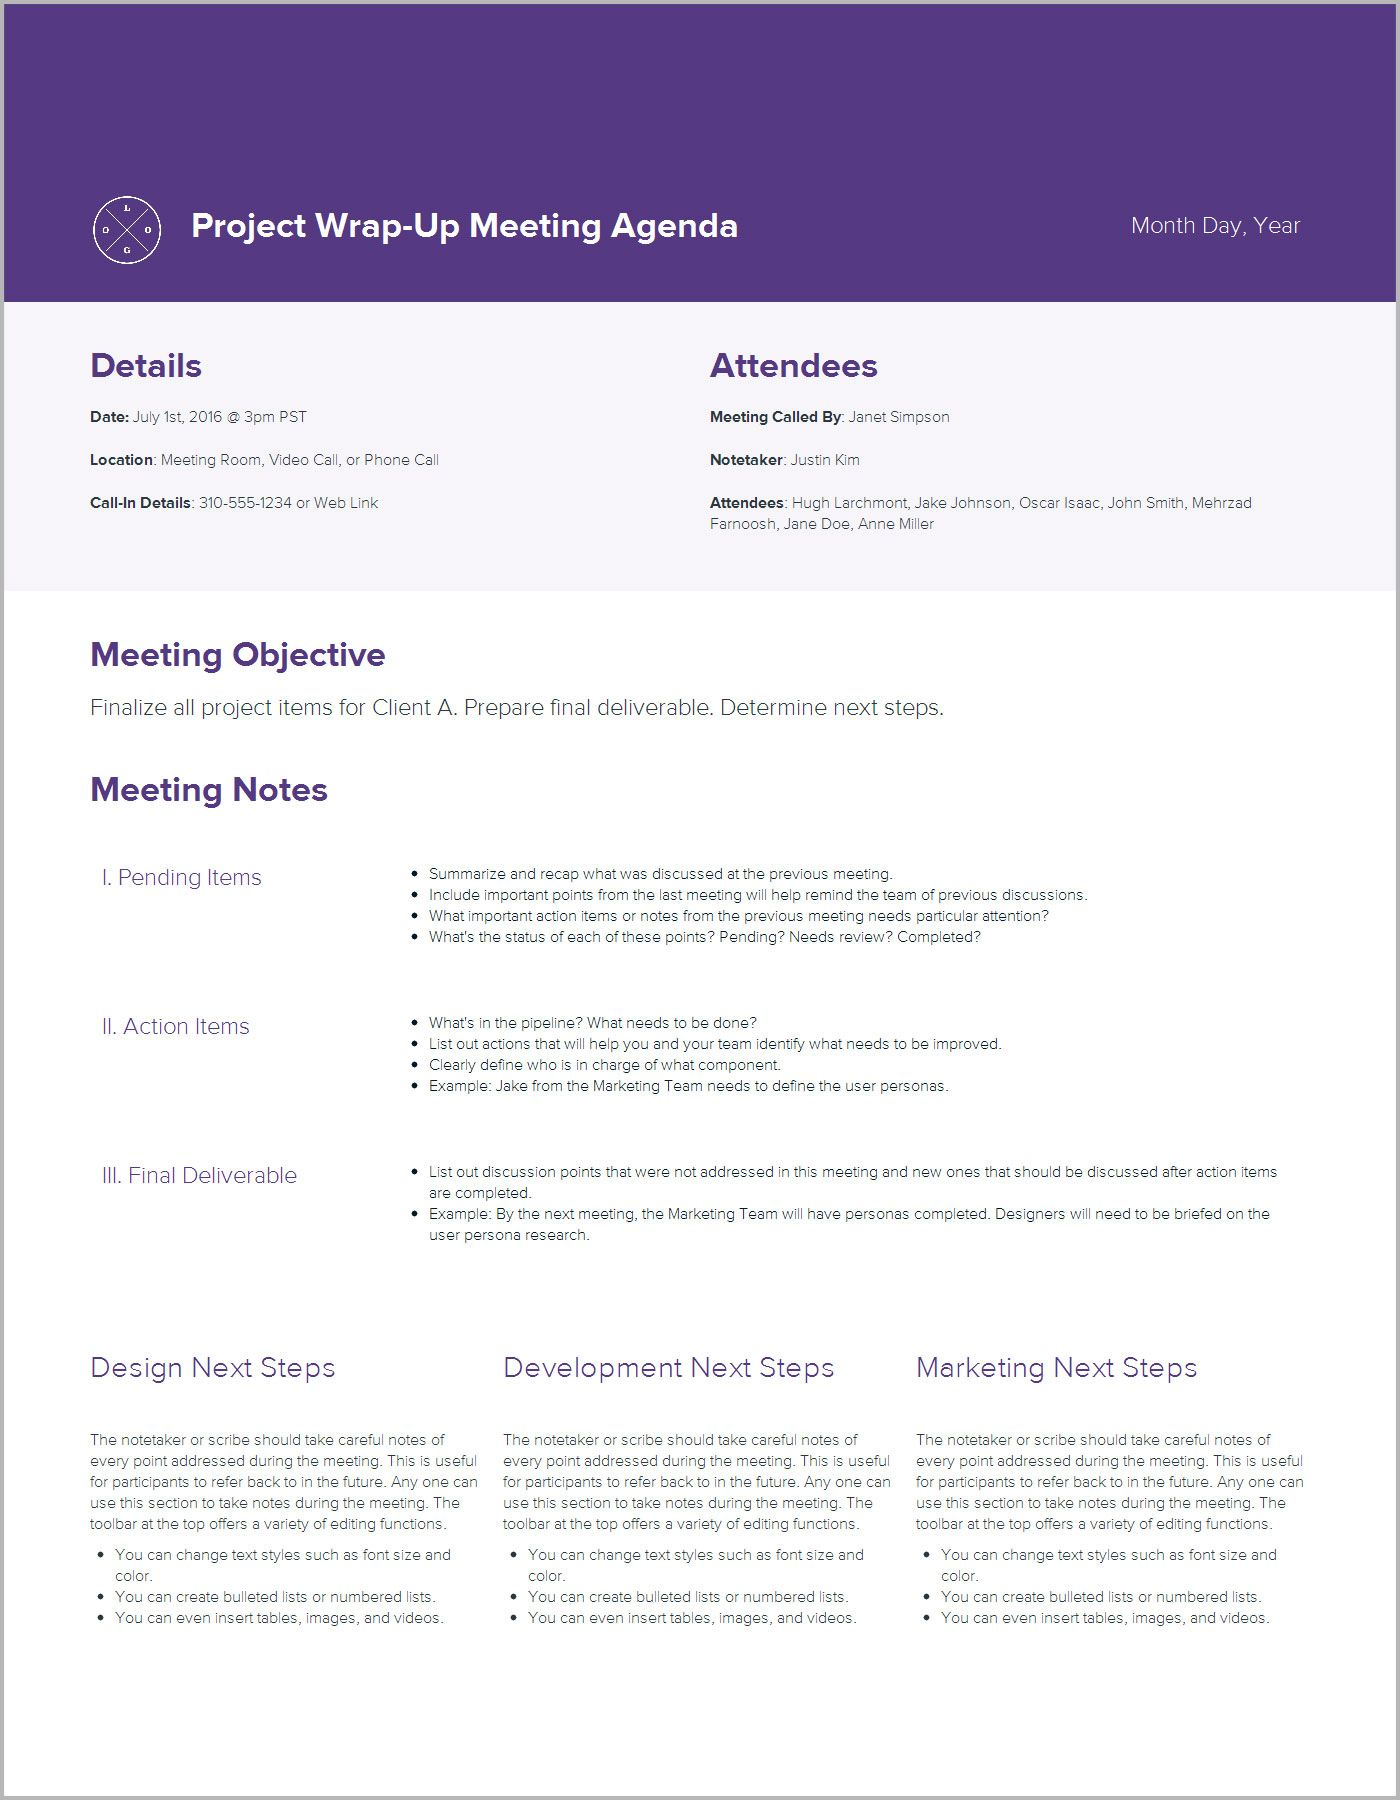 Meeting Agenda Template By Xtensio ItS Free  Increase